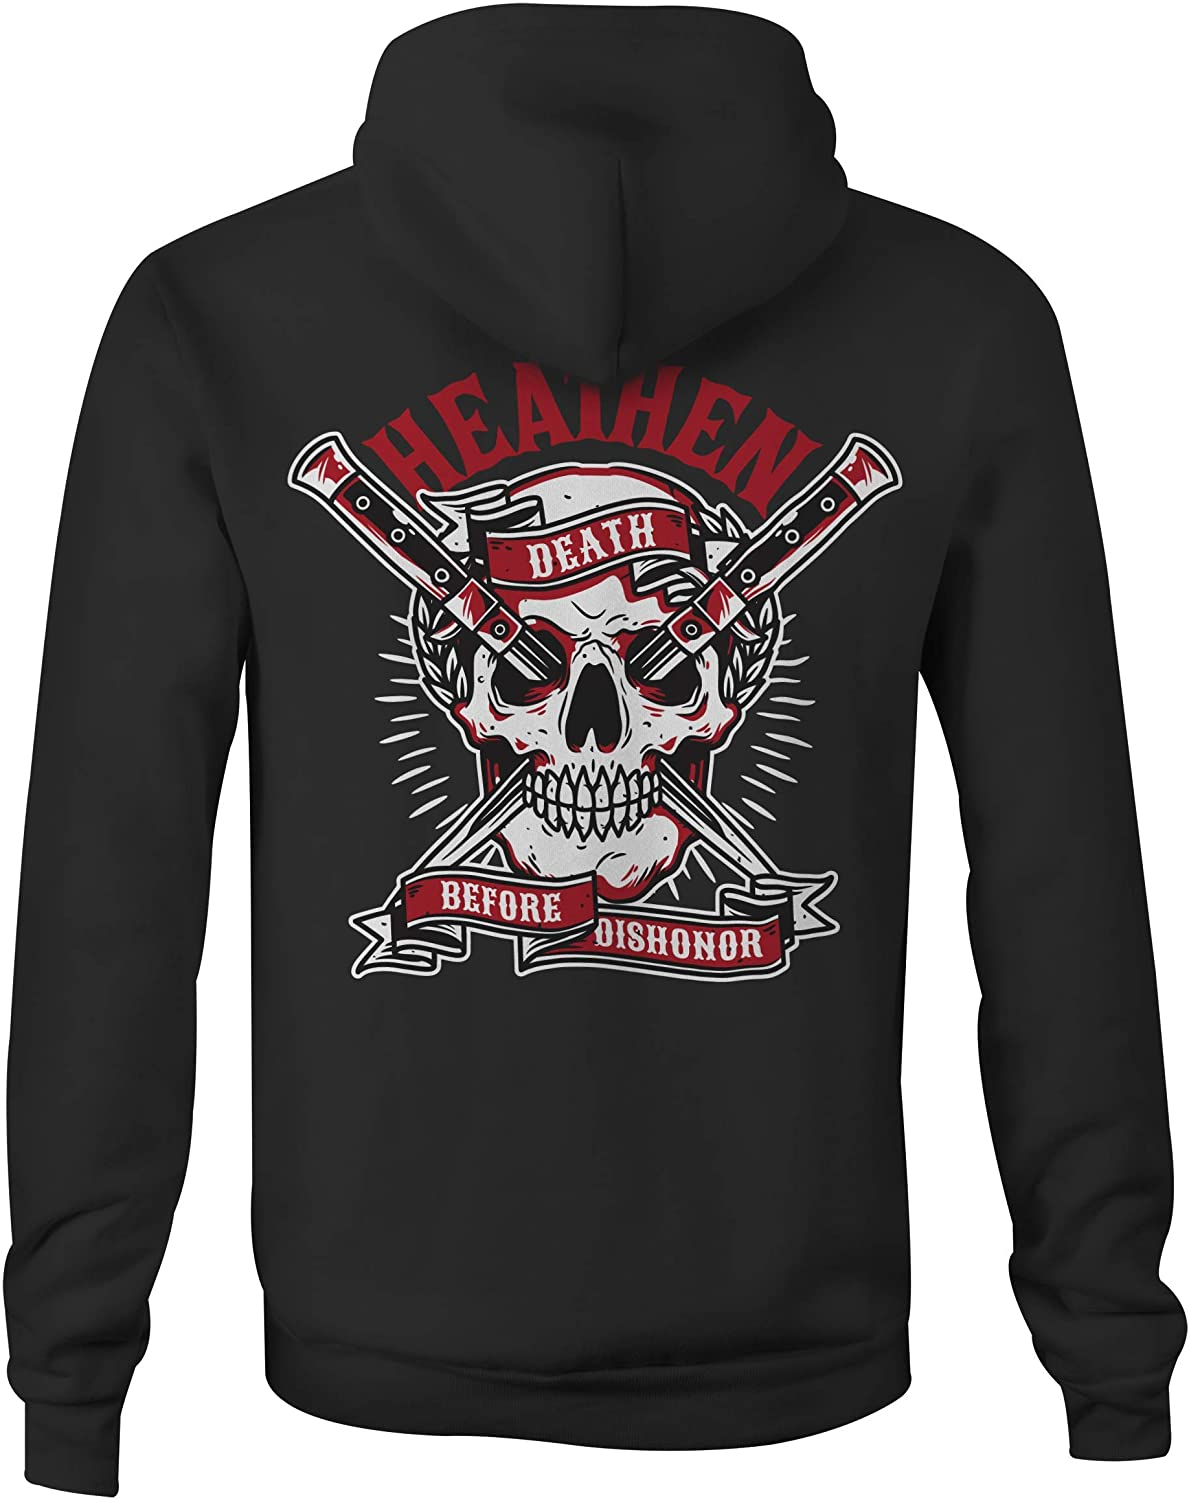 Heathen Death Before Dishonor Hoodie